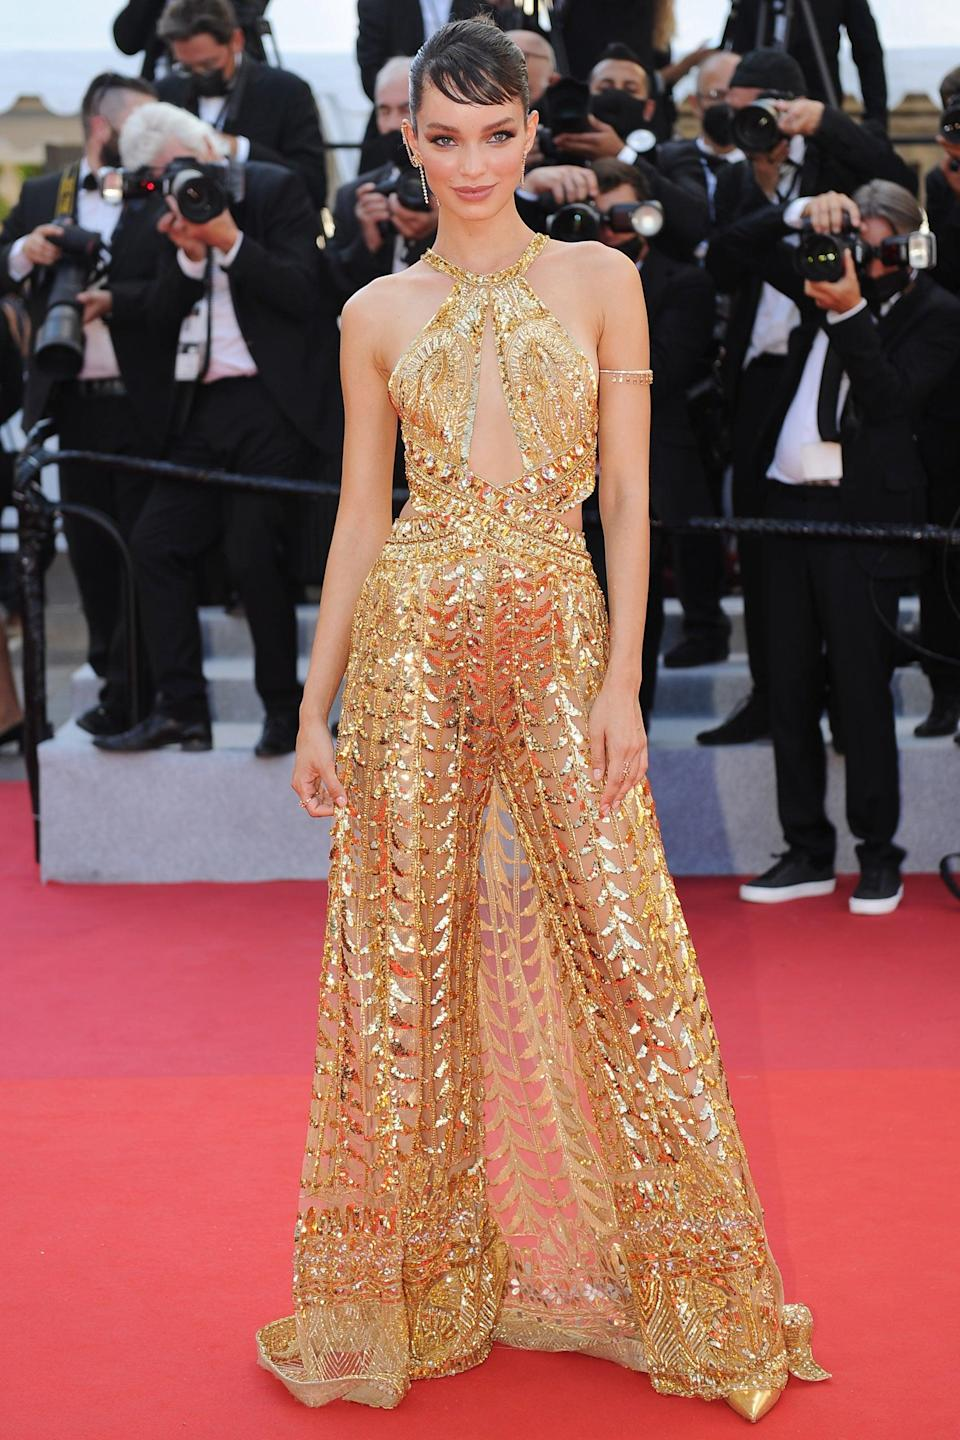 """Model Luma Grothe did a take on party dressing in a gown with an exposed back by Zuhair Murad. <span class=""""copyright"""">Photo: Stefanie Rex/picture alliance/Getty Images.</span>"""